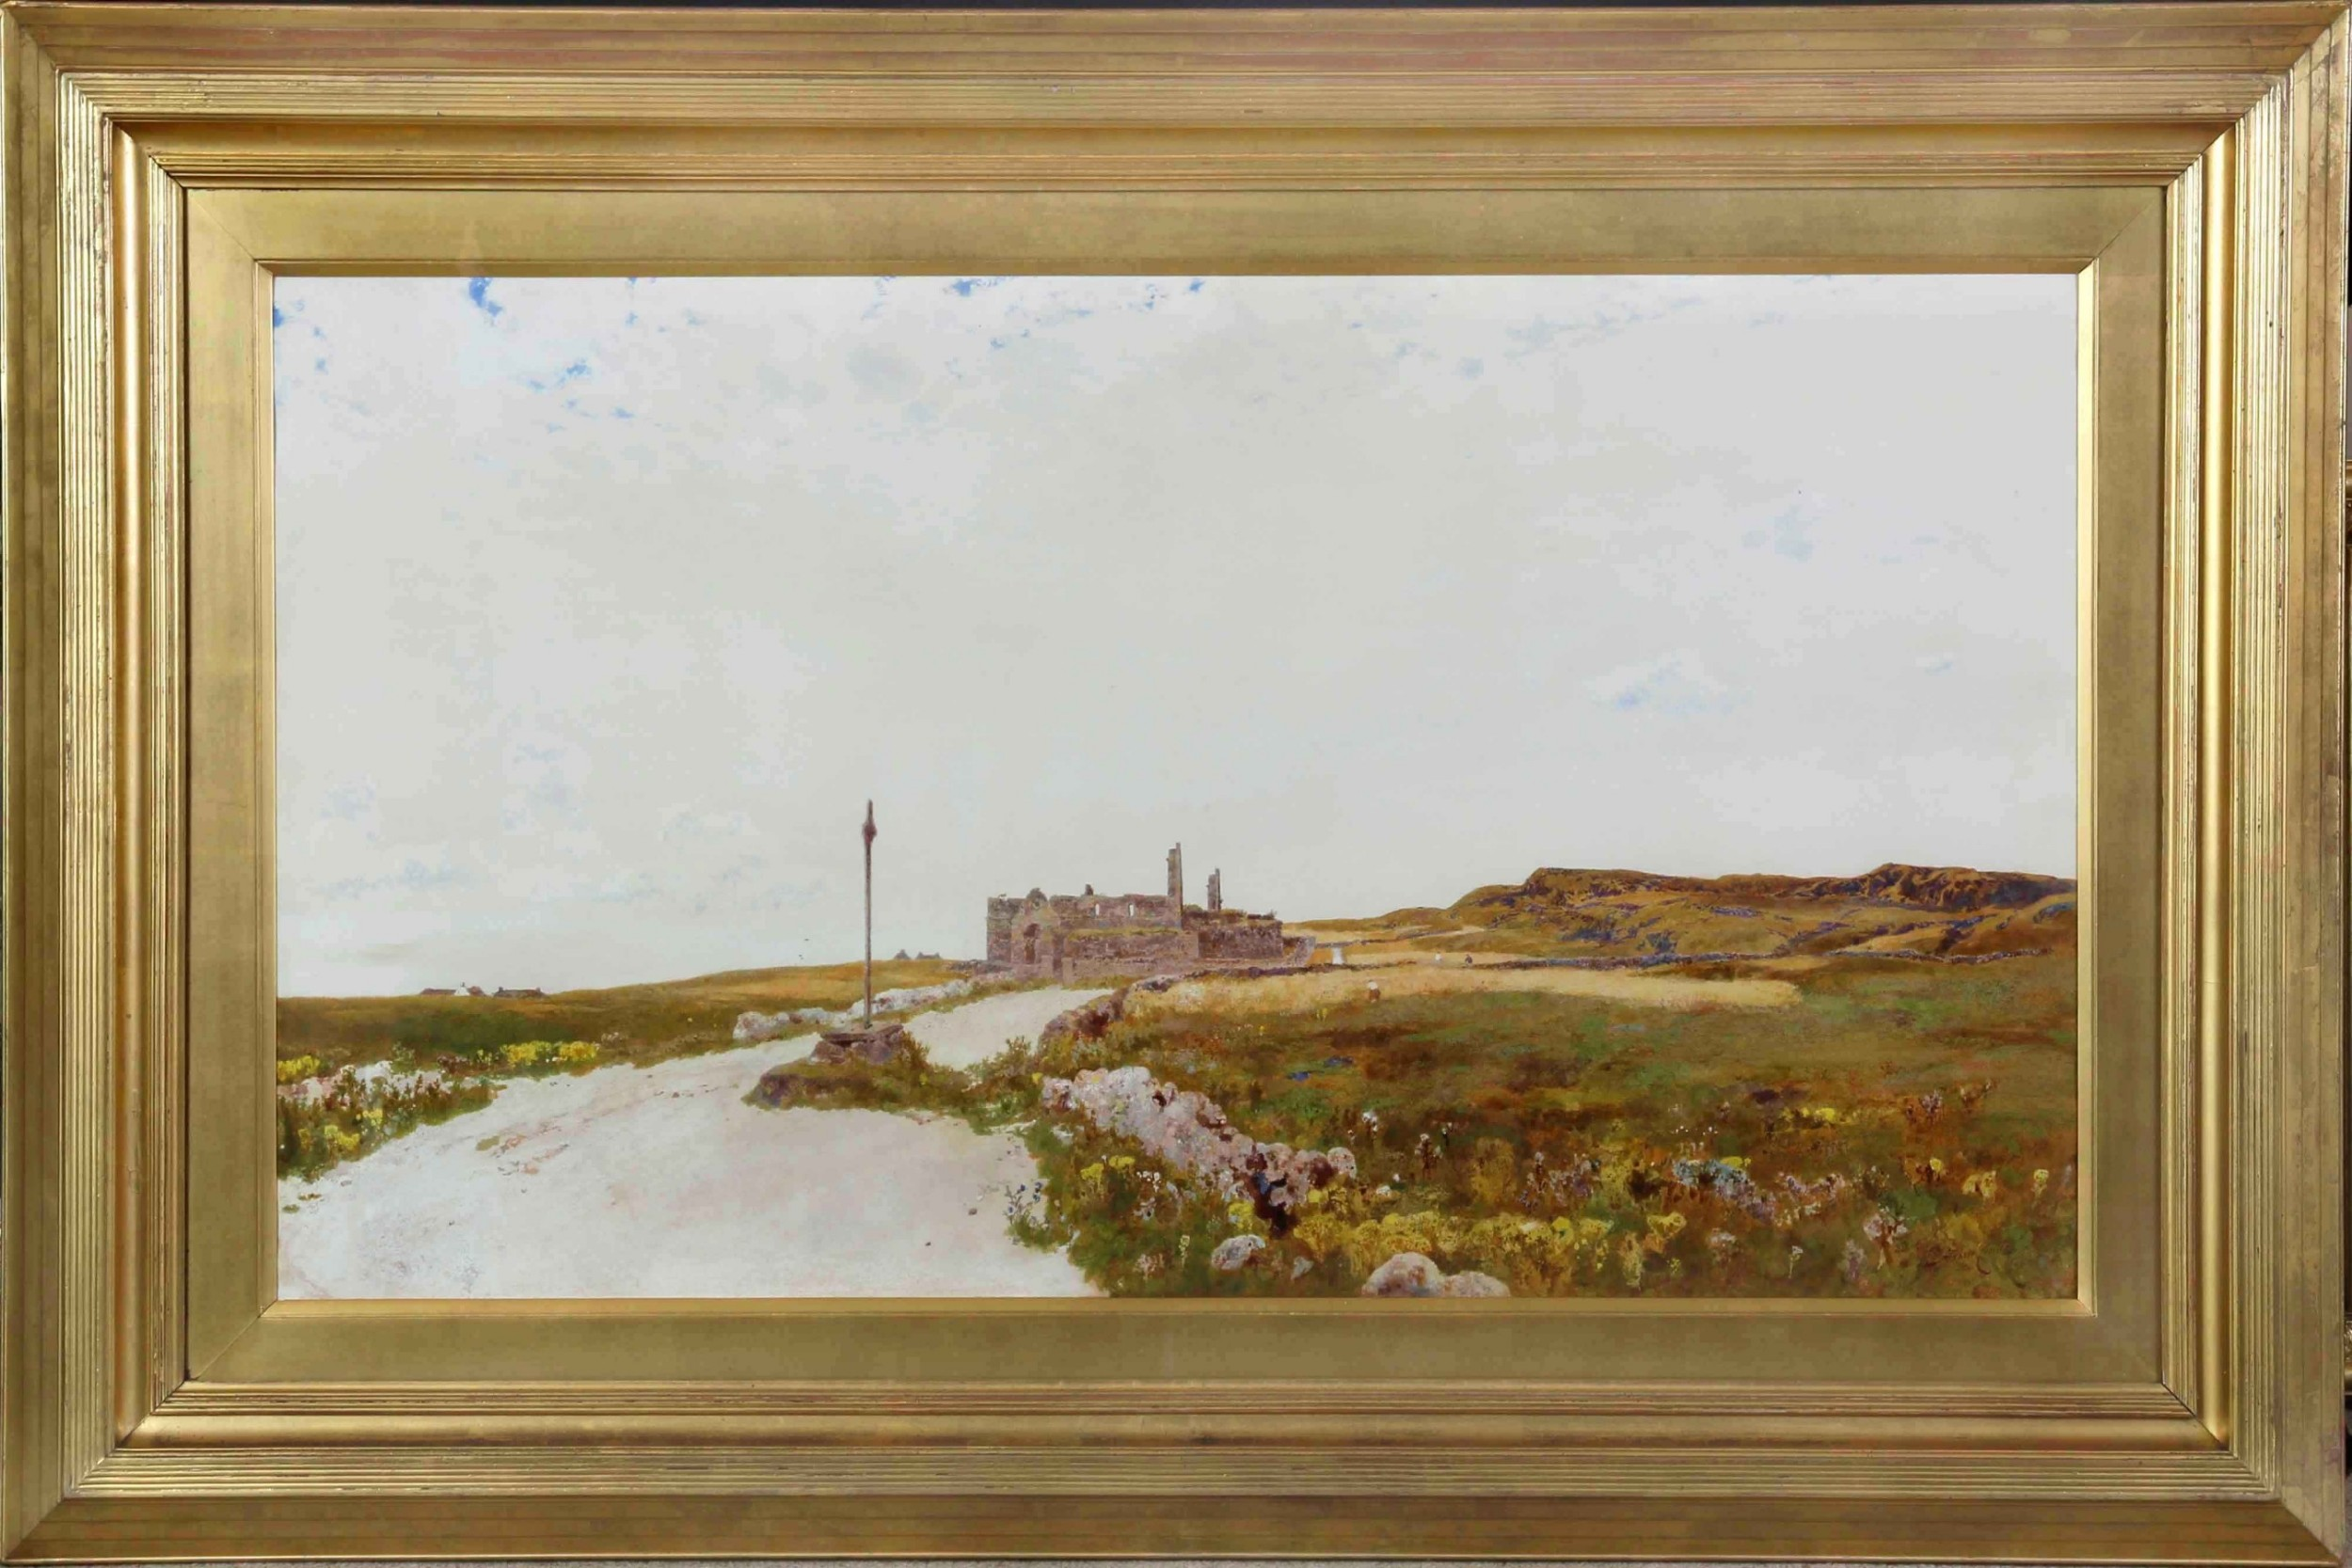 hubert coutts ri iona very large watercolour landscape